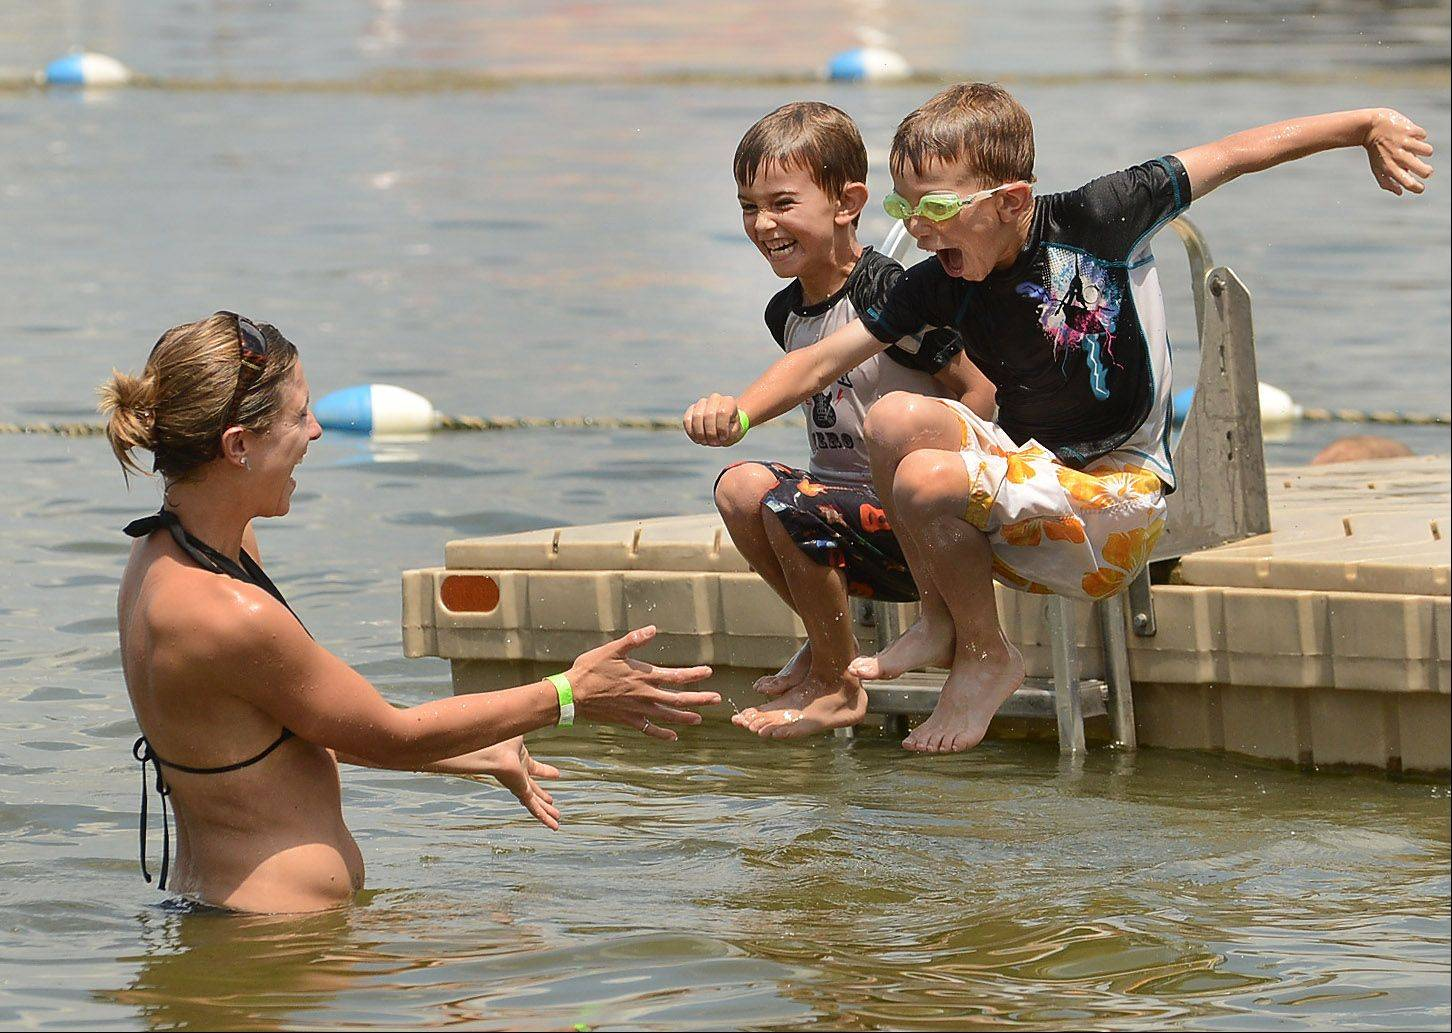 Payton Harlow, left, and his brother, Logan, of Island Lake jump toward their mom, Katie Harlow, at Bangs Lake in Wauconda.